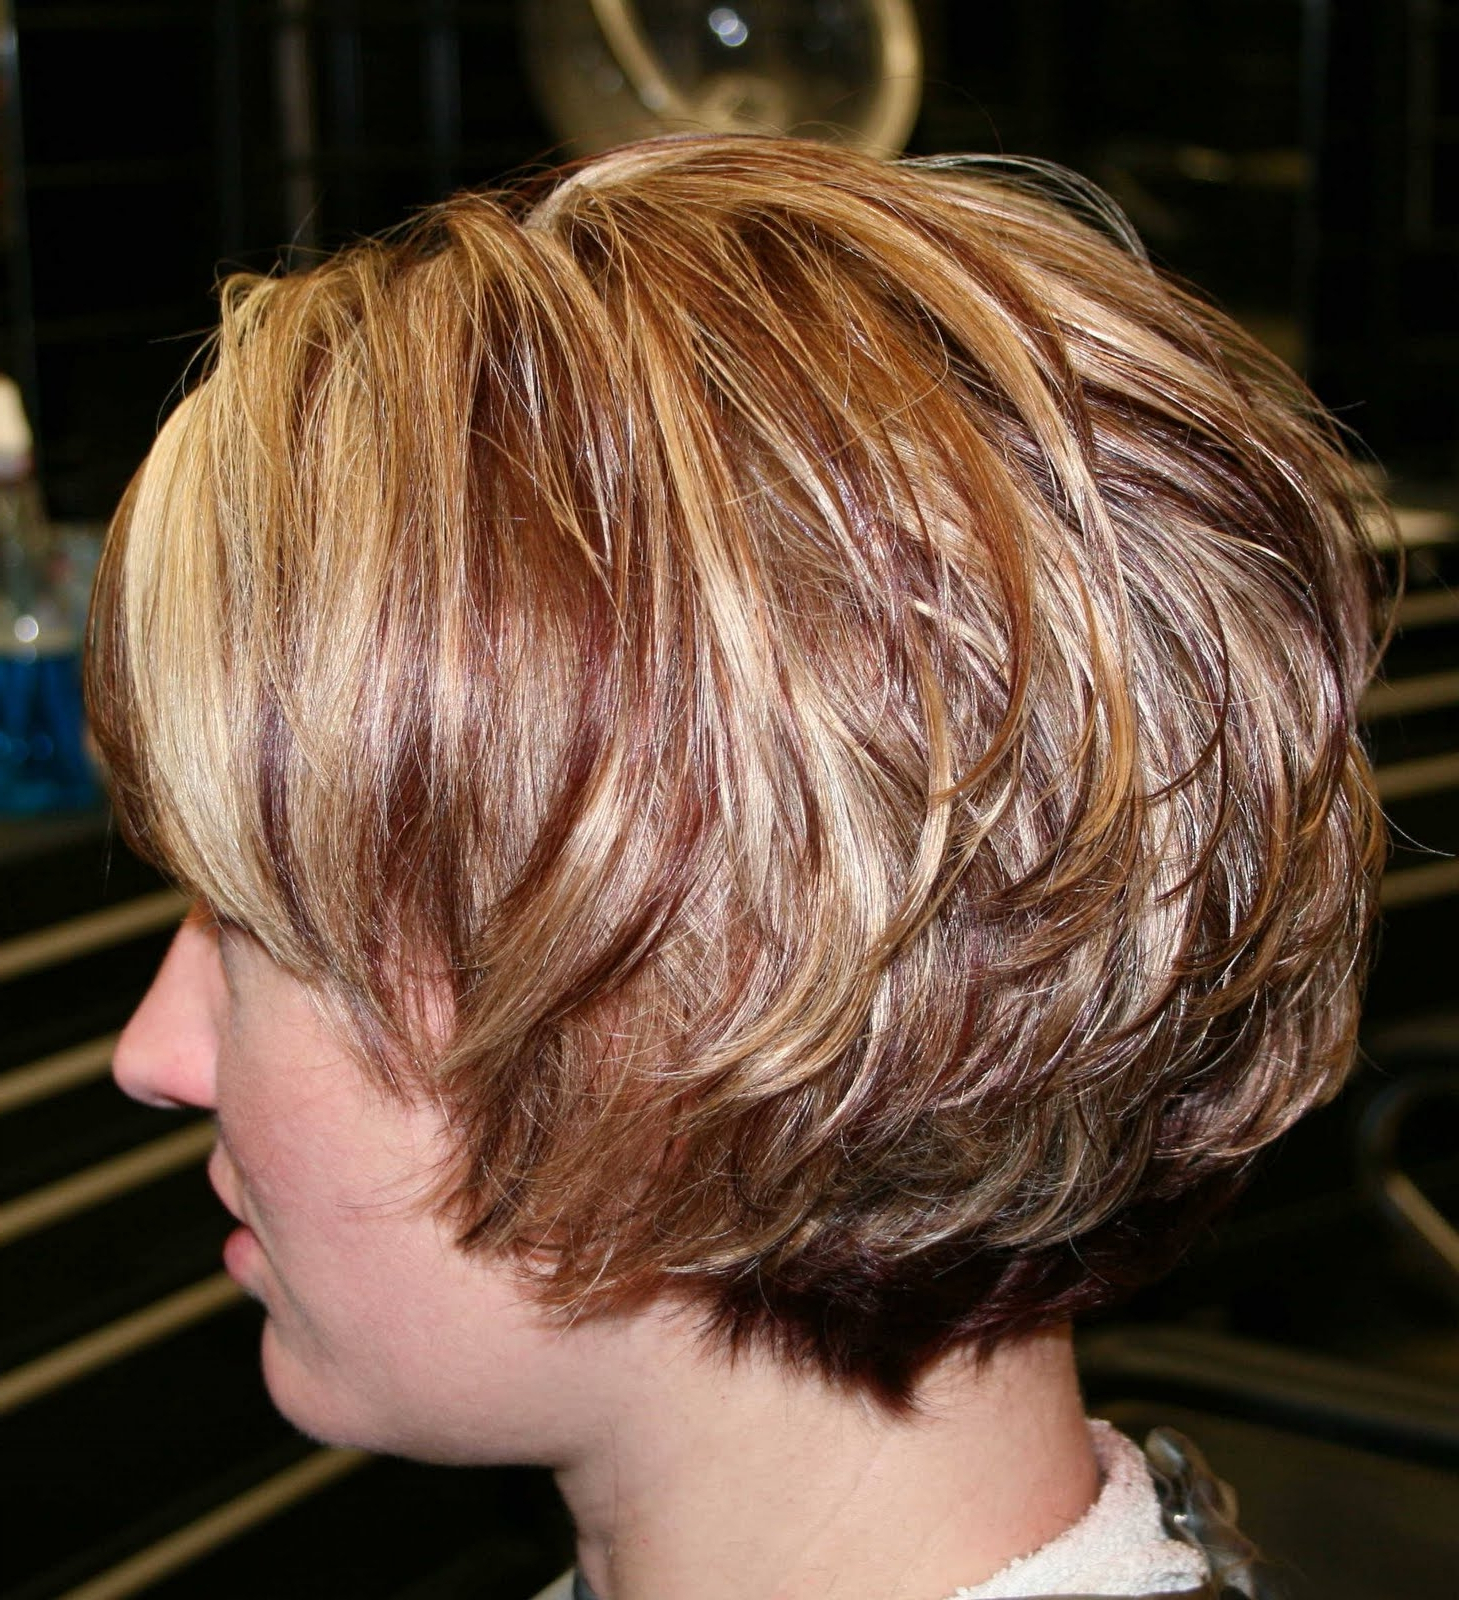 Layered Bob For Wavy Hair Cute Messy Short Wavy Curly Hairstyle For Intended For Short Wavy Haircuts With Messy Layers (Gallery 19 of 20)